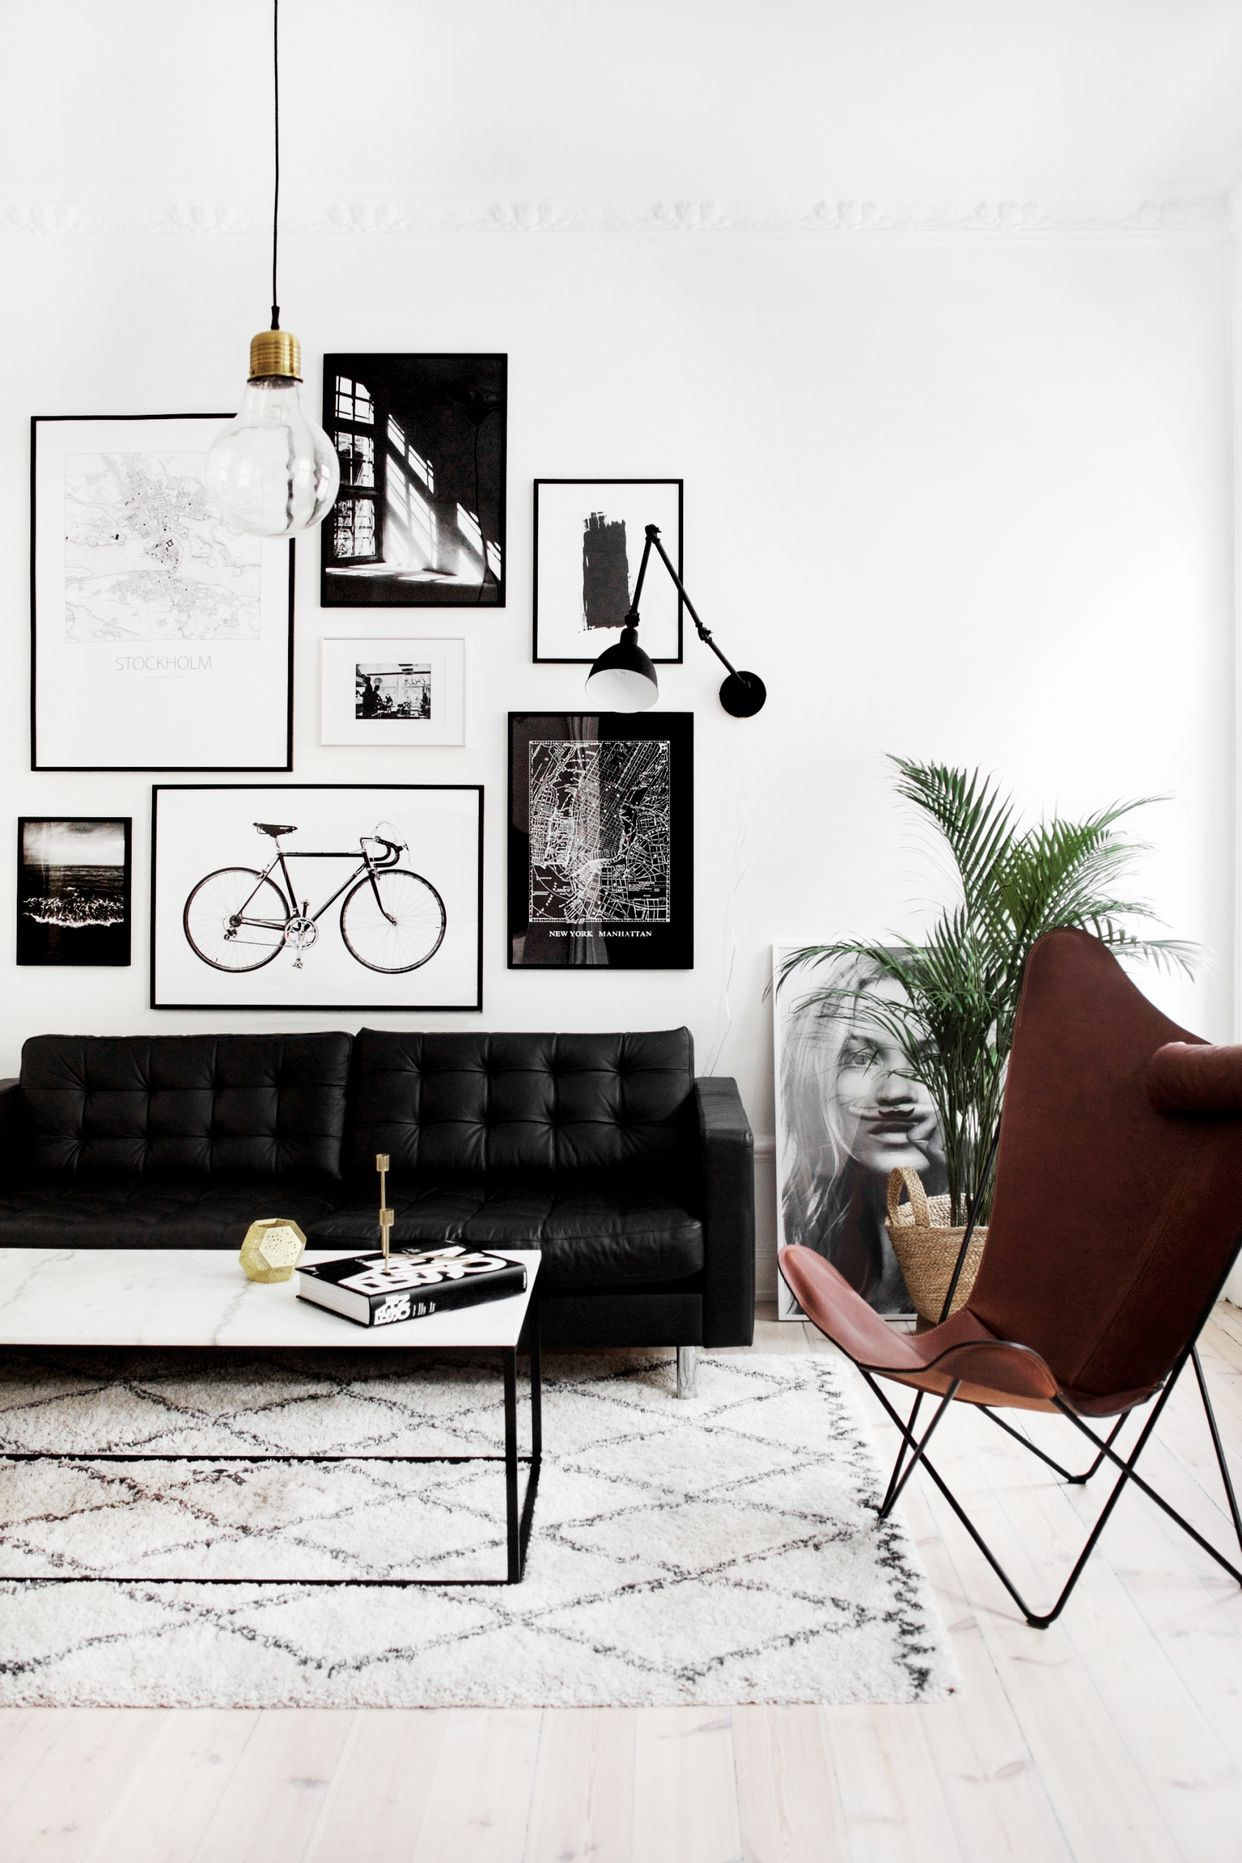 A Glimt From Our Livingroom | Living Room wall | Pinterest | Dulce ...